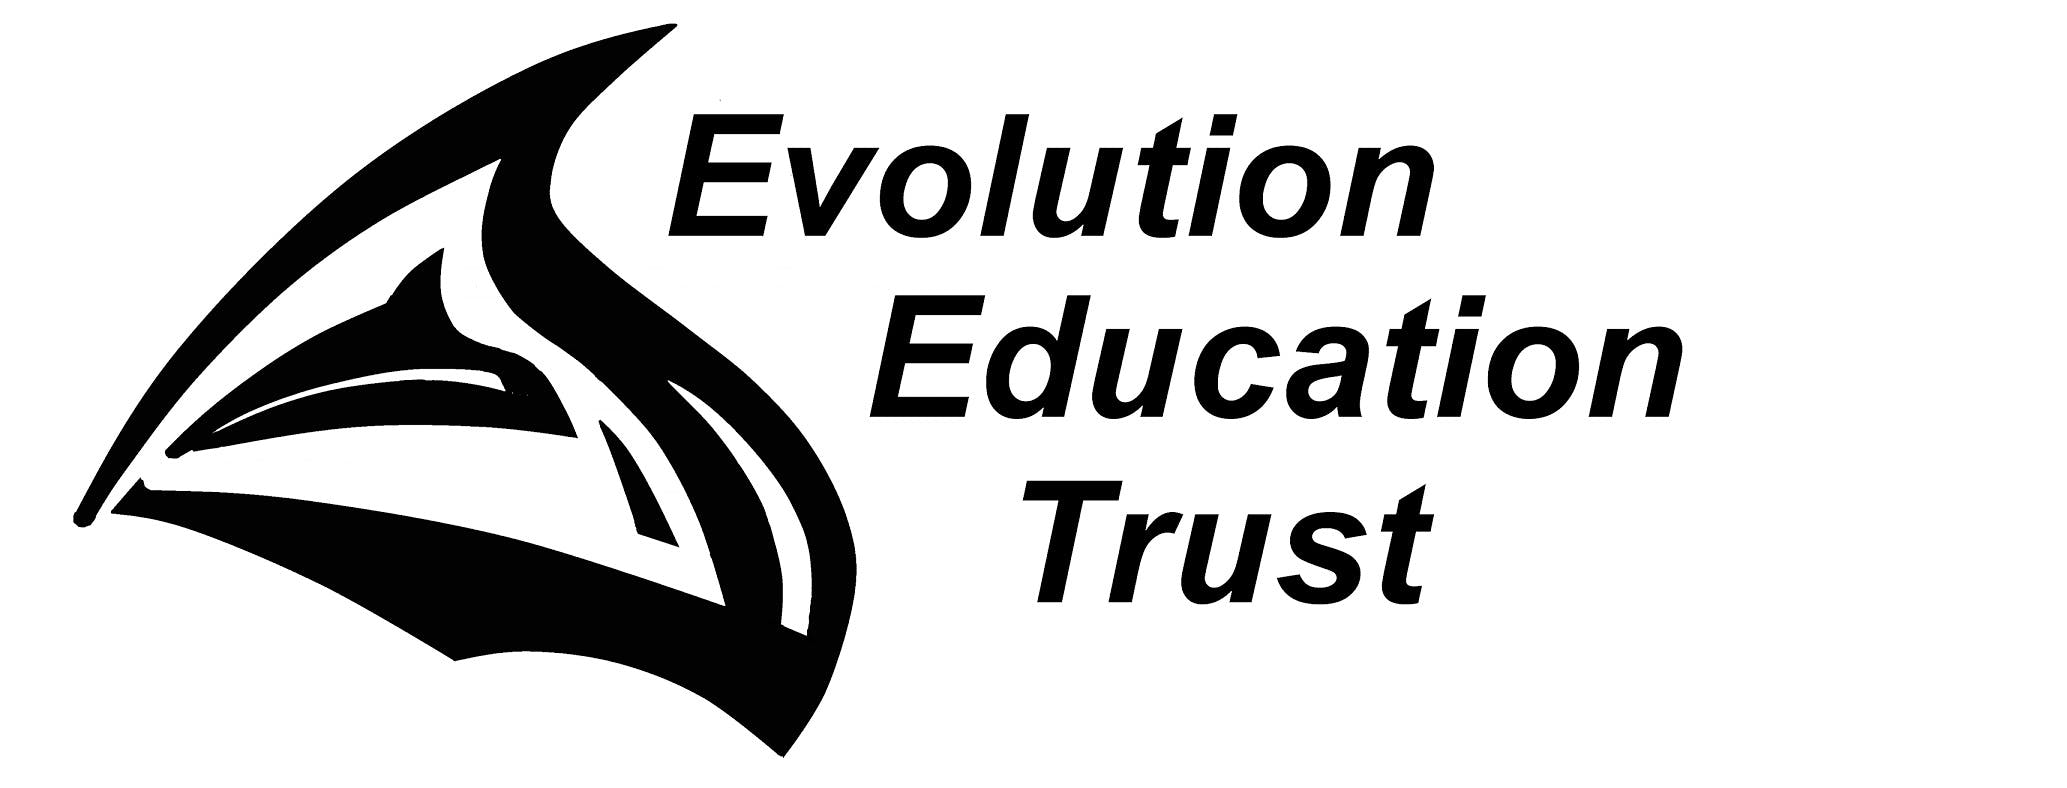 Image for Evolution Education Trust